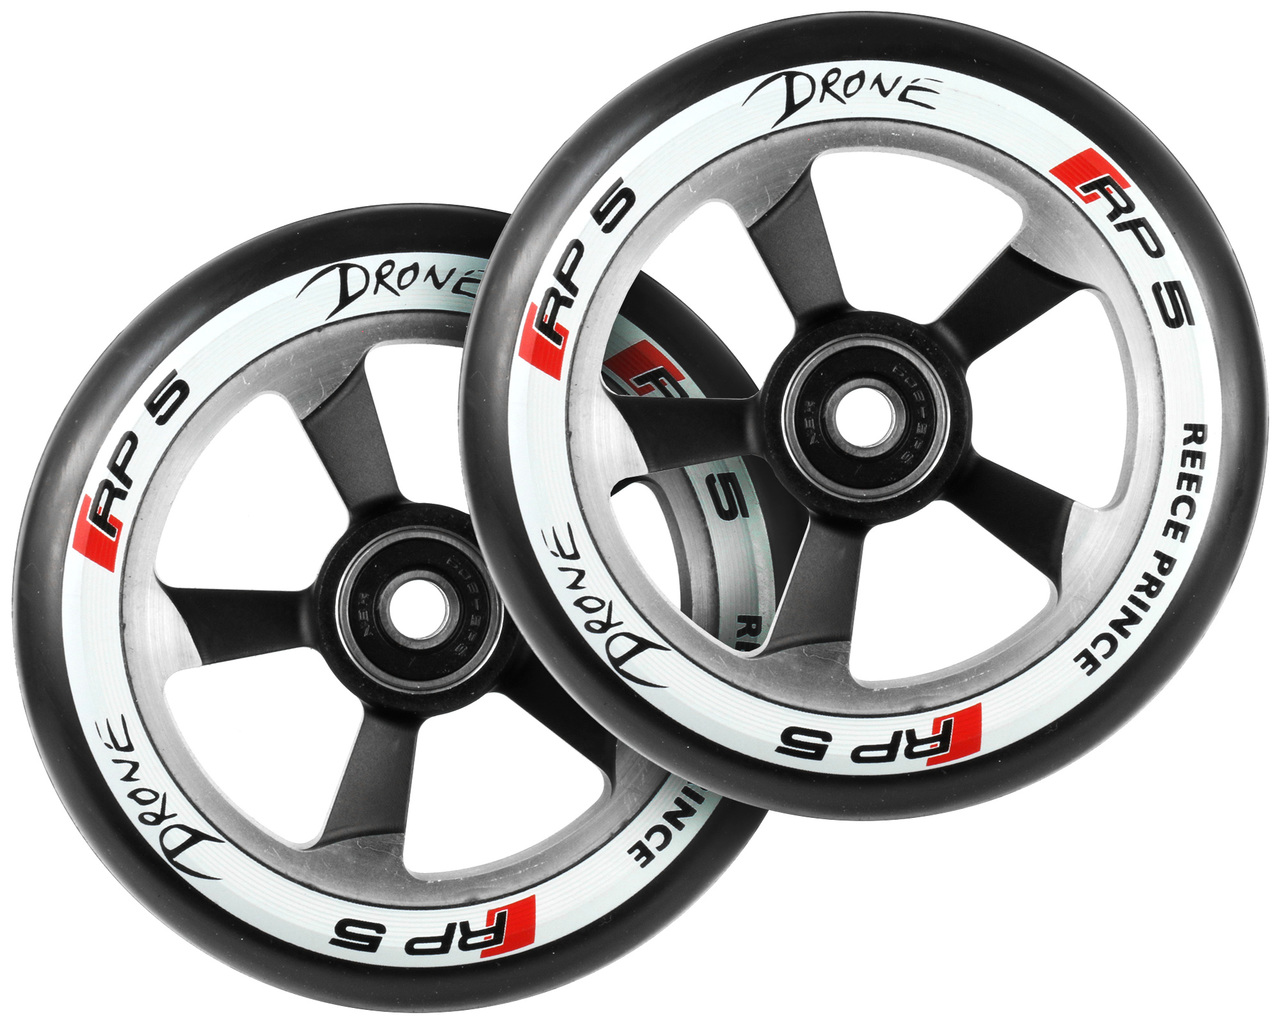 Drone-RP5-110mm-Wheels-Reece-Prince-Signature-Pair-Pro-Scooter-Wheels